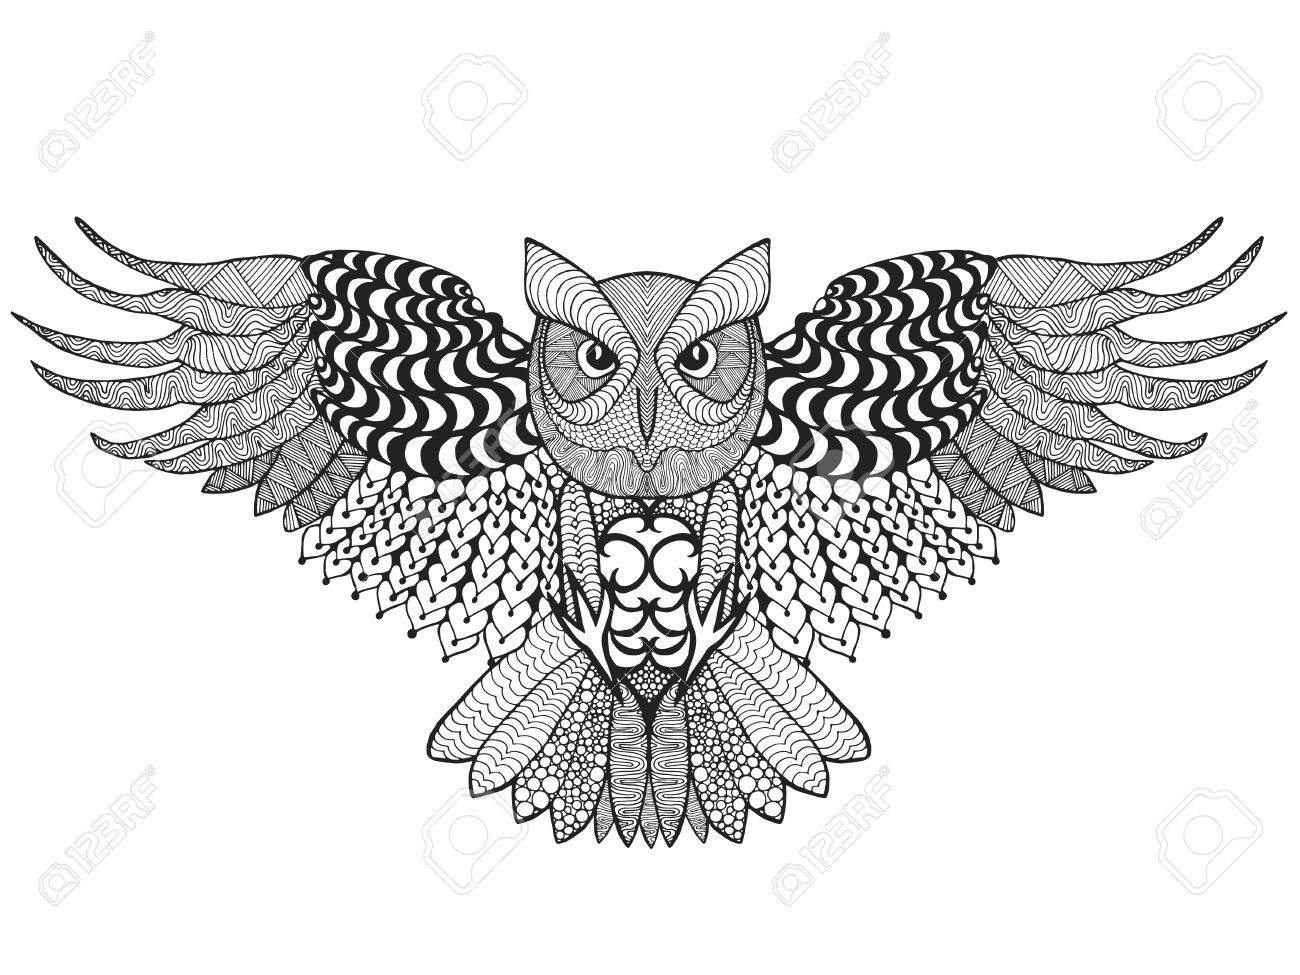 Eagle Owl Adult Anti Stress Coloring Page Stock Vector